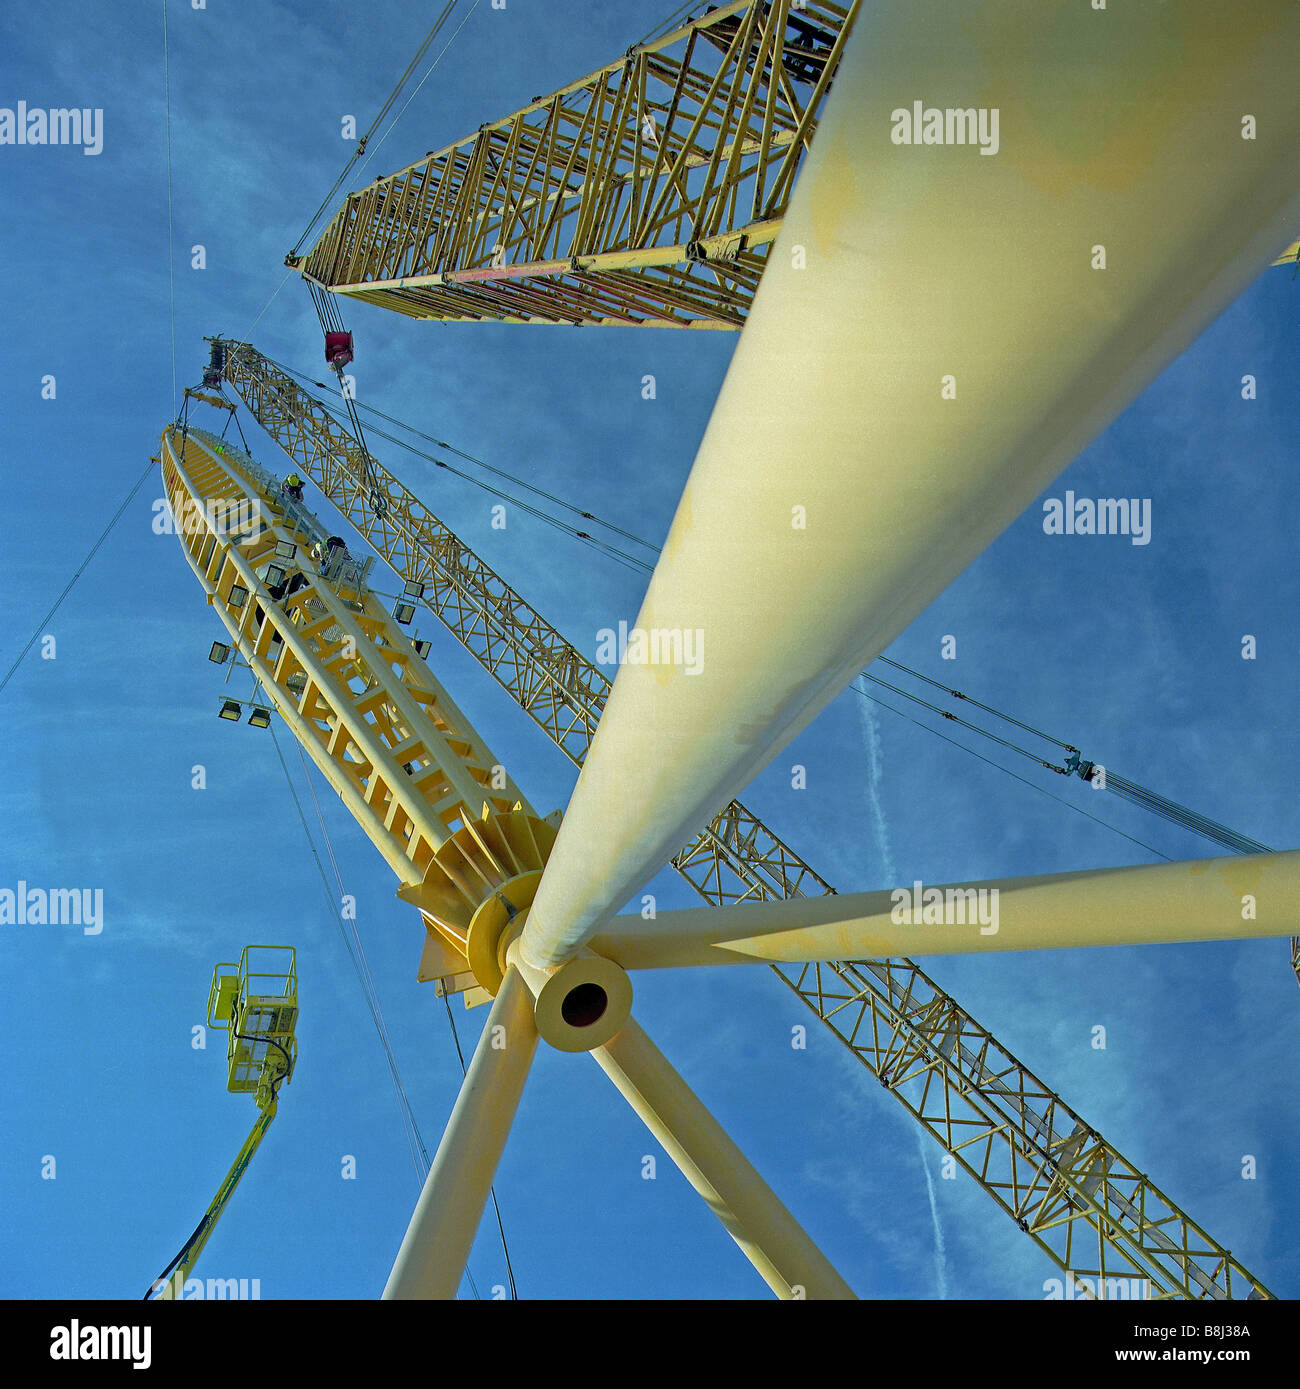 Contractors positioning the huge 100 metre support masts during the building of the Millennium Dome/O2 Arena in Stock Photo